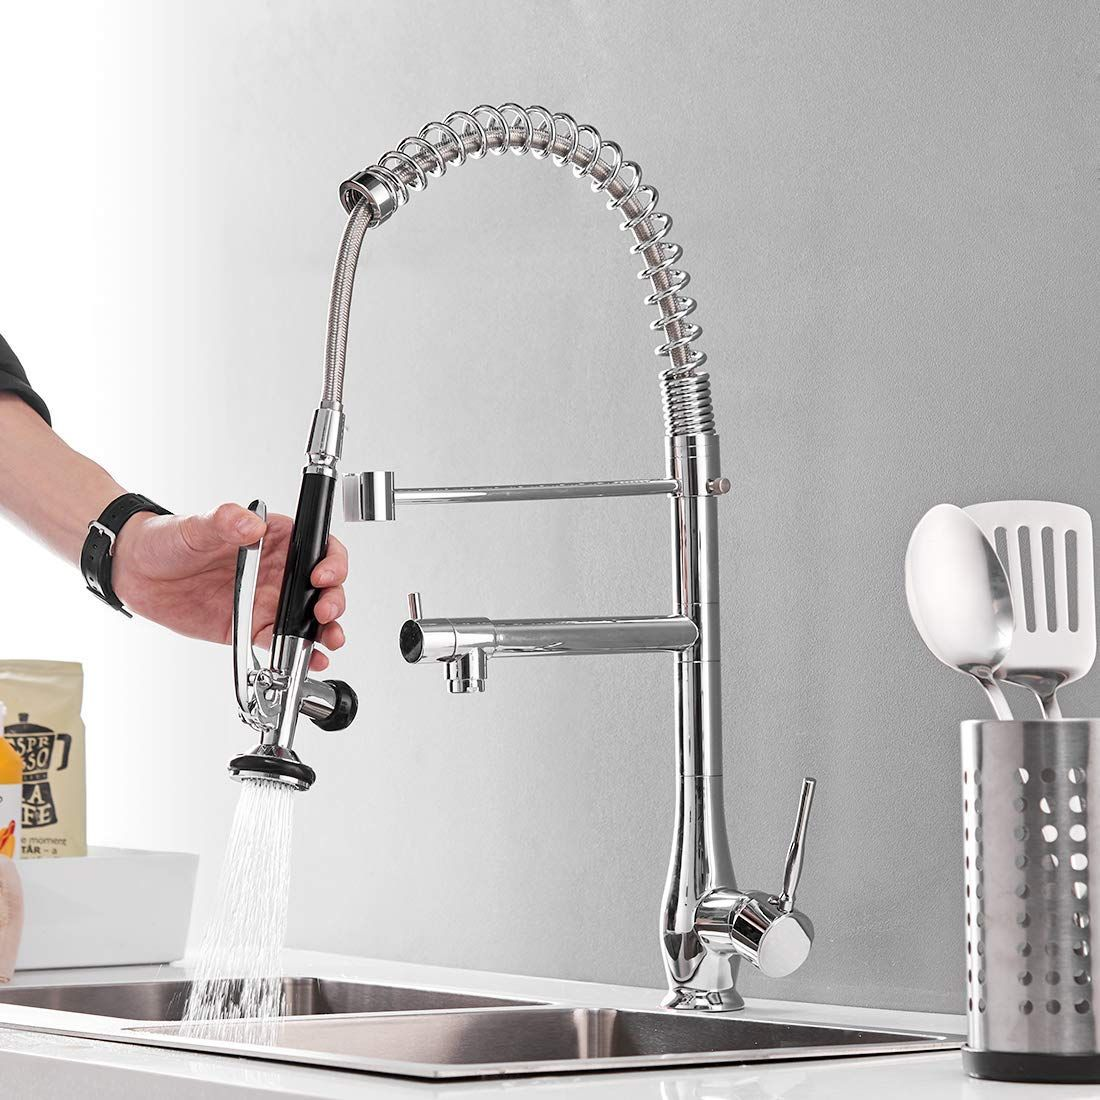 Commercial Pull Down Kitchen Faucet With Sprayer Gimili High Arch Single Hole Single H Kitchen Sink Faucets Chrome Kitchen Faucet Kitchen Faucet With Sprayer